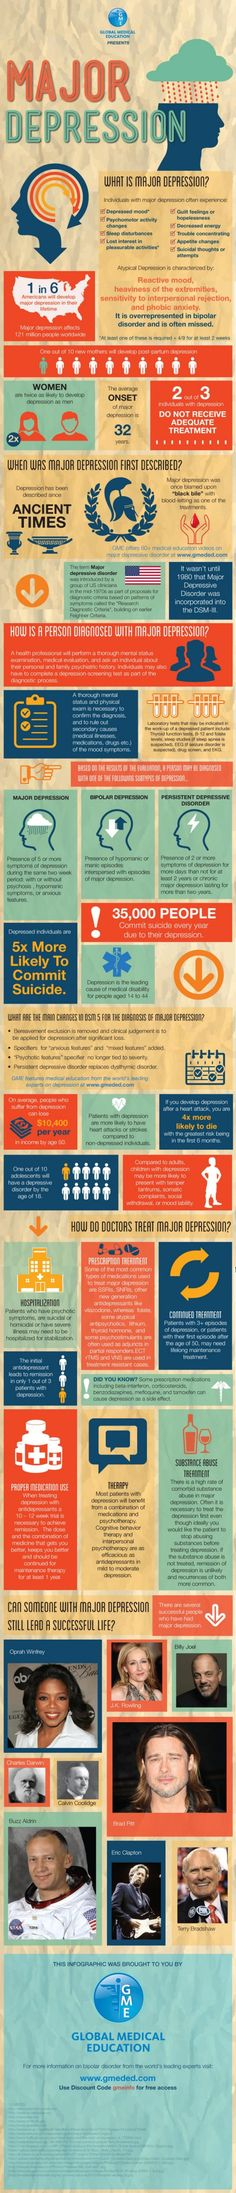 What is Major Depression?